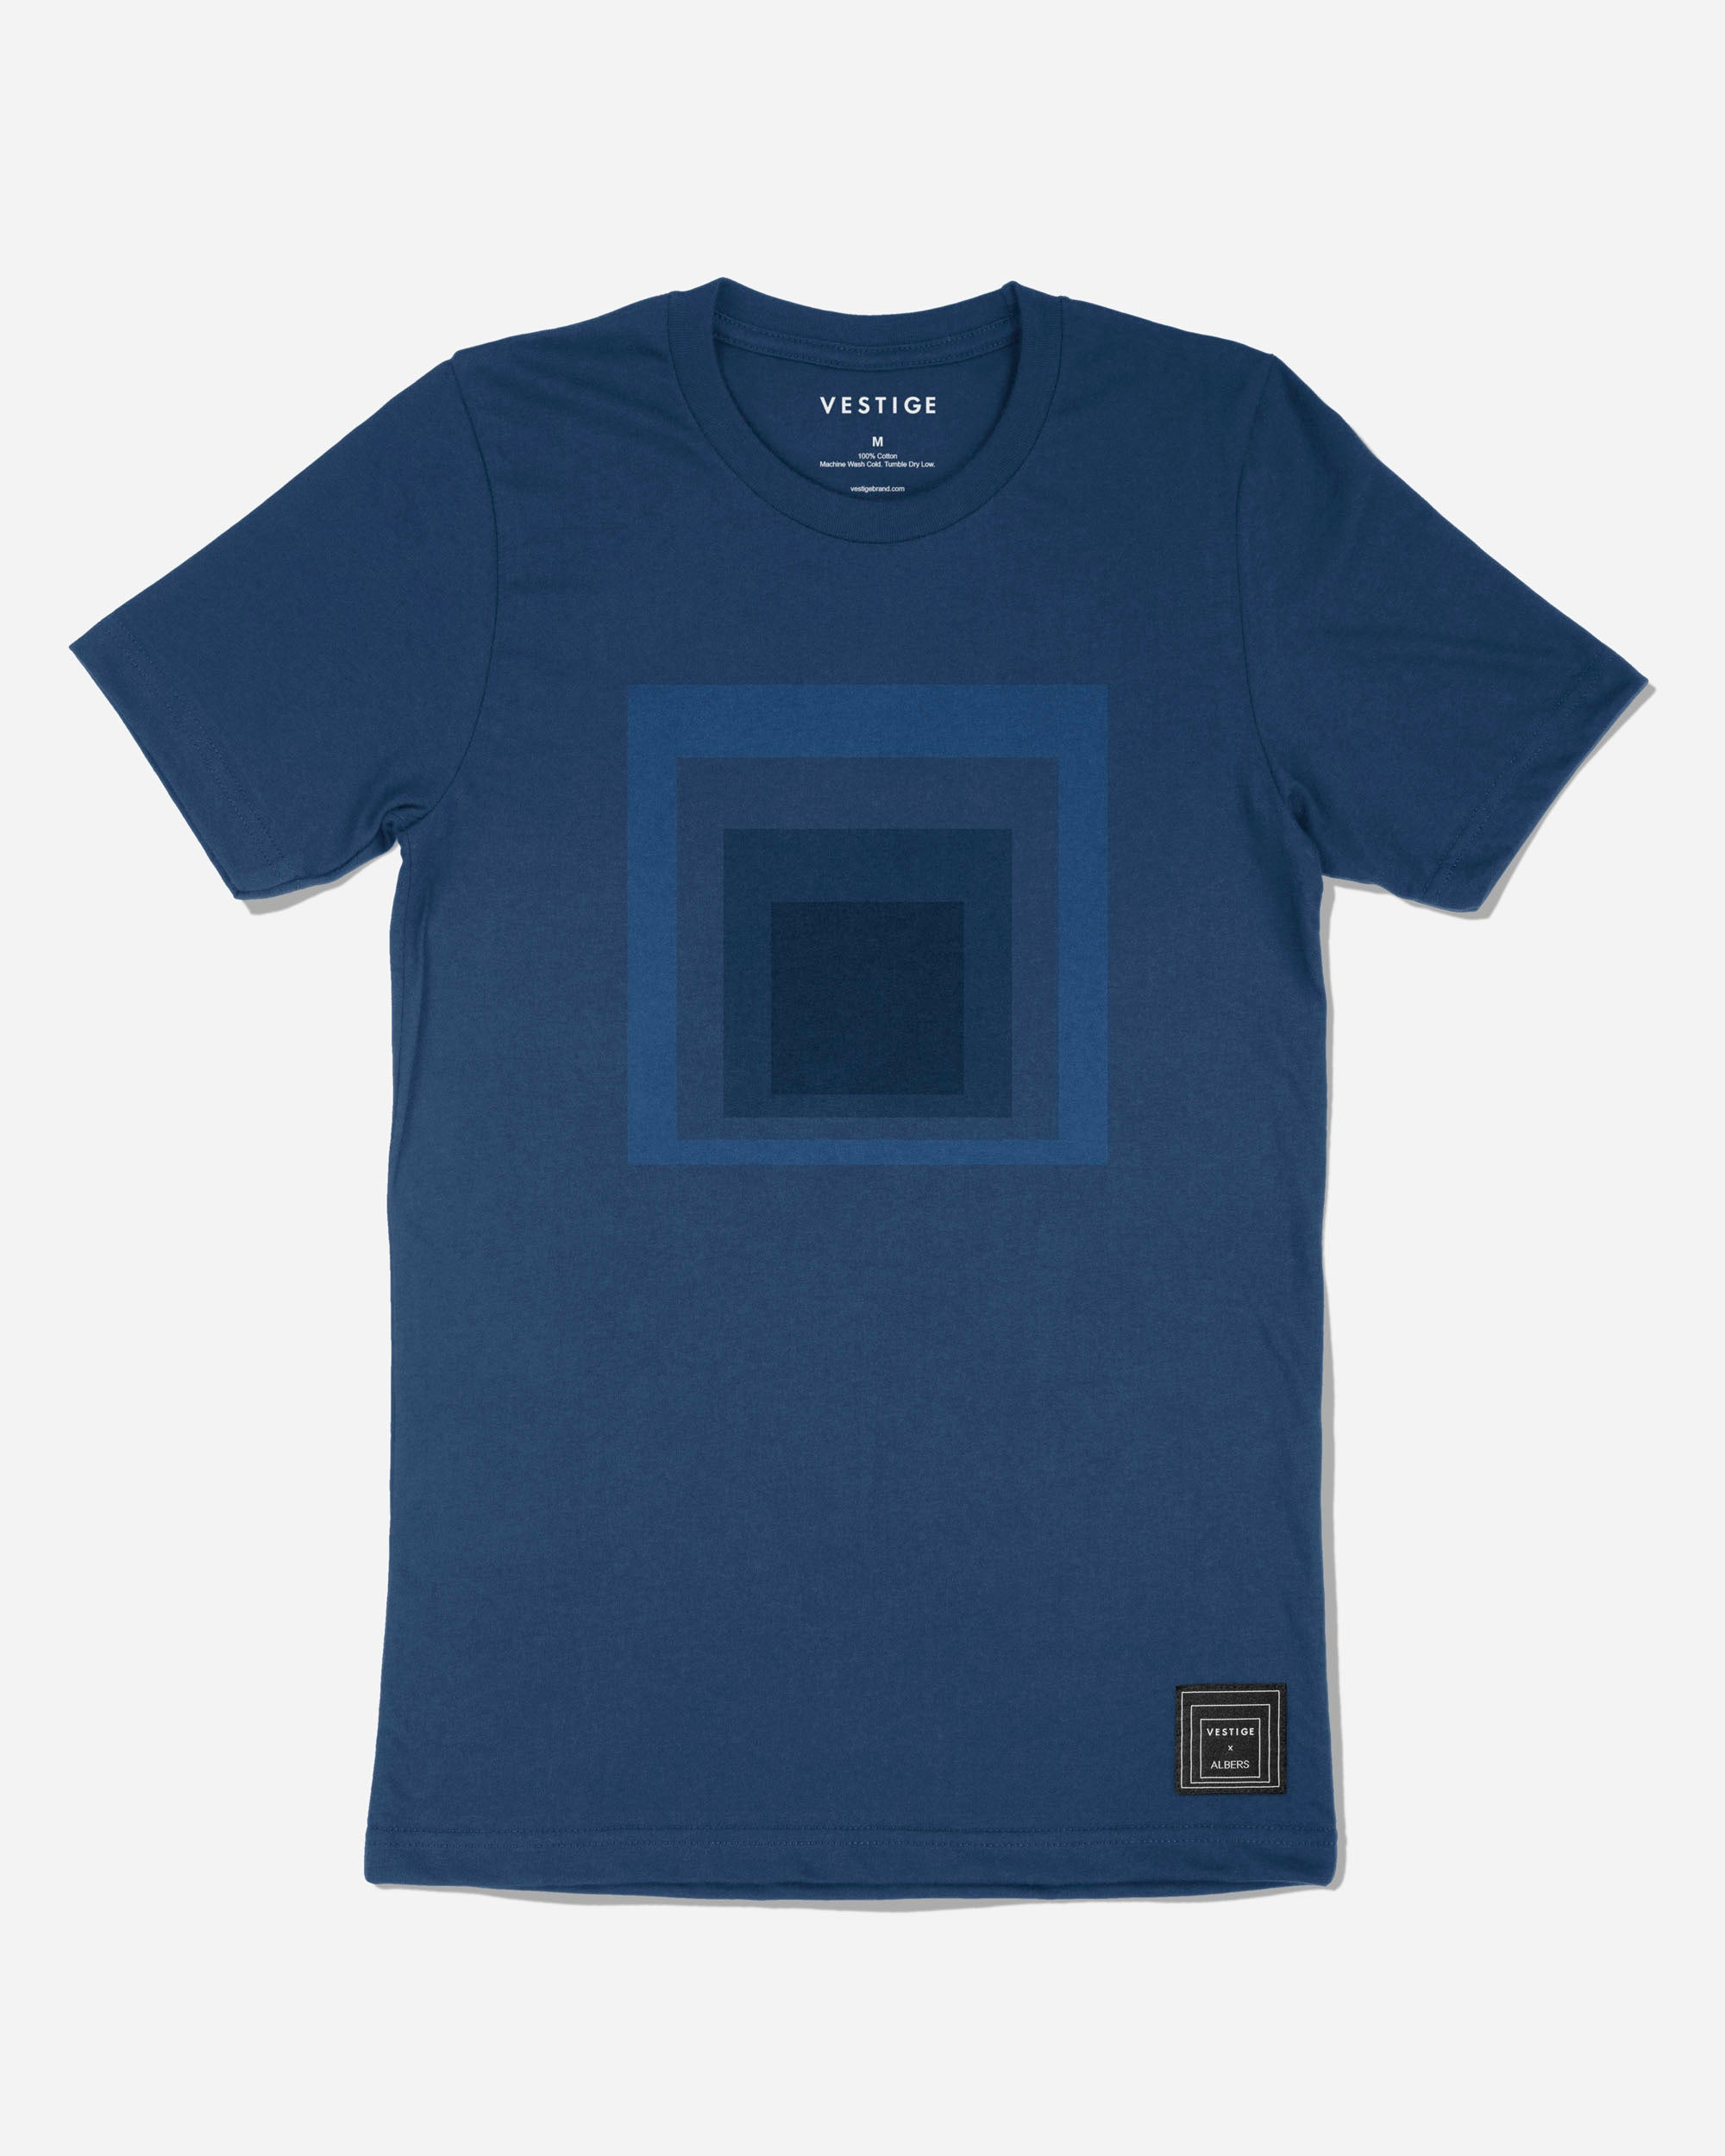 Josef Albers Tonal Homage to the Square T-Shirt, Blue